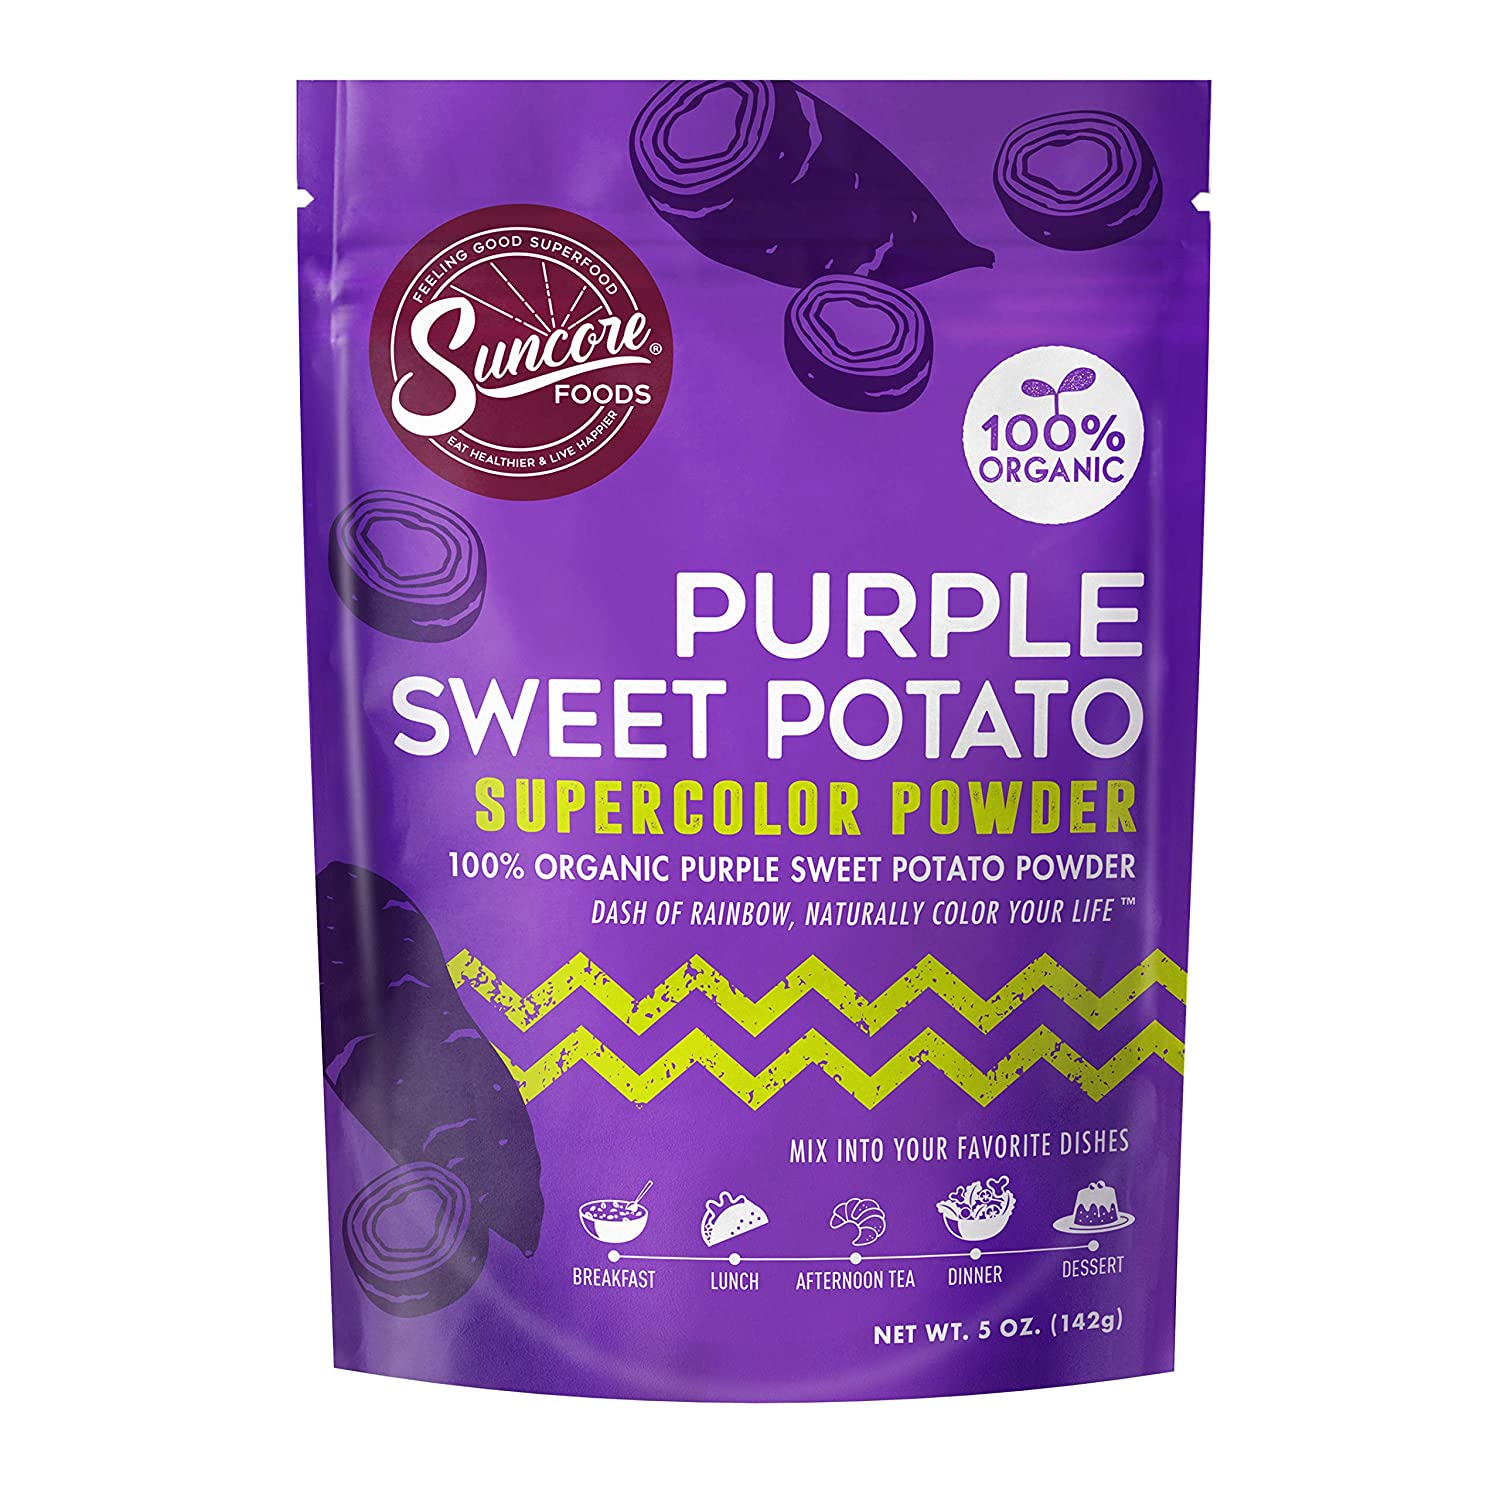 Suncore Foods – Organic Purple Sweet Potato Supercolor Powder, 5oz – Natural Purple Sweet Potato Food Coloring Powder, Plant Based, Vegan, Gluten Free, Non-GMO